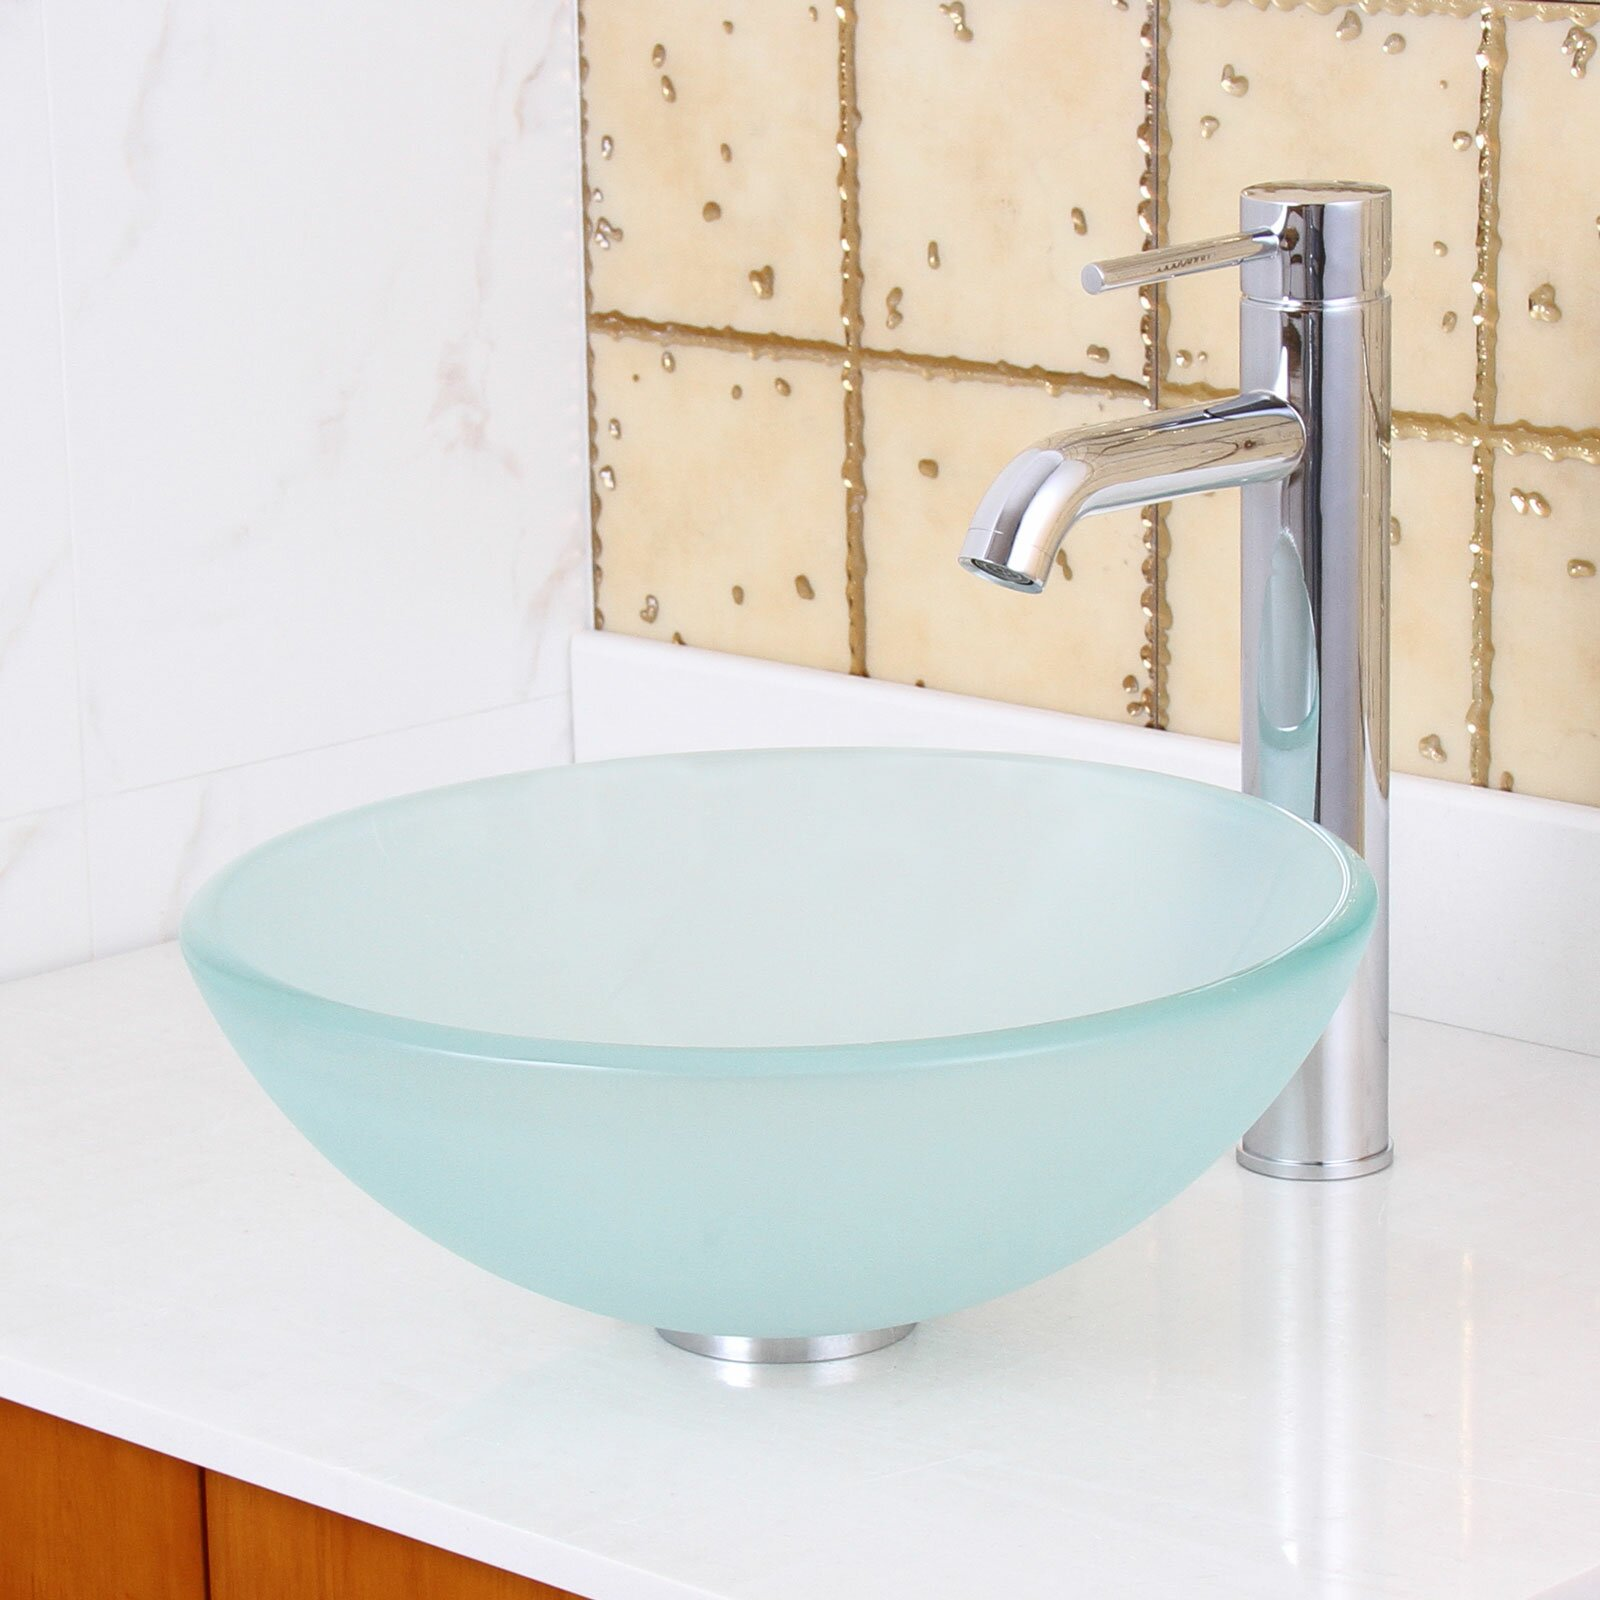 Elite Double Layered Tempered Glass Round Bathroom Sink Reviews Wayfair